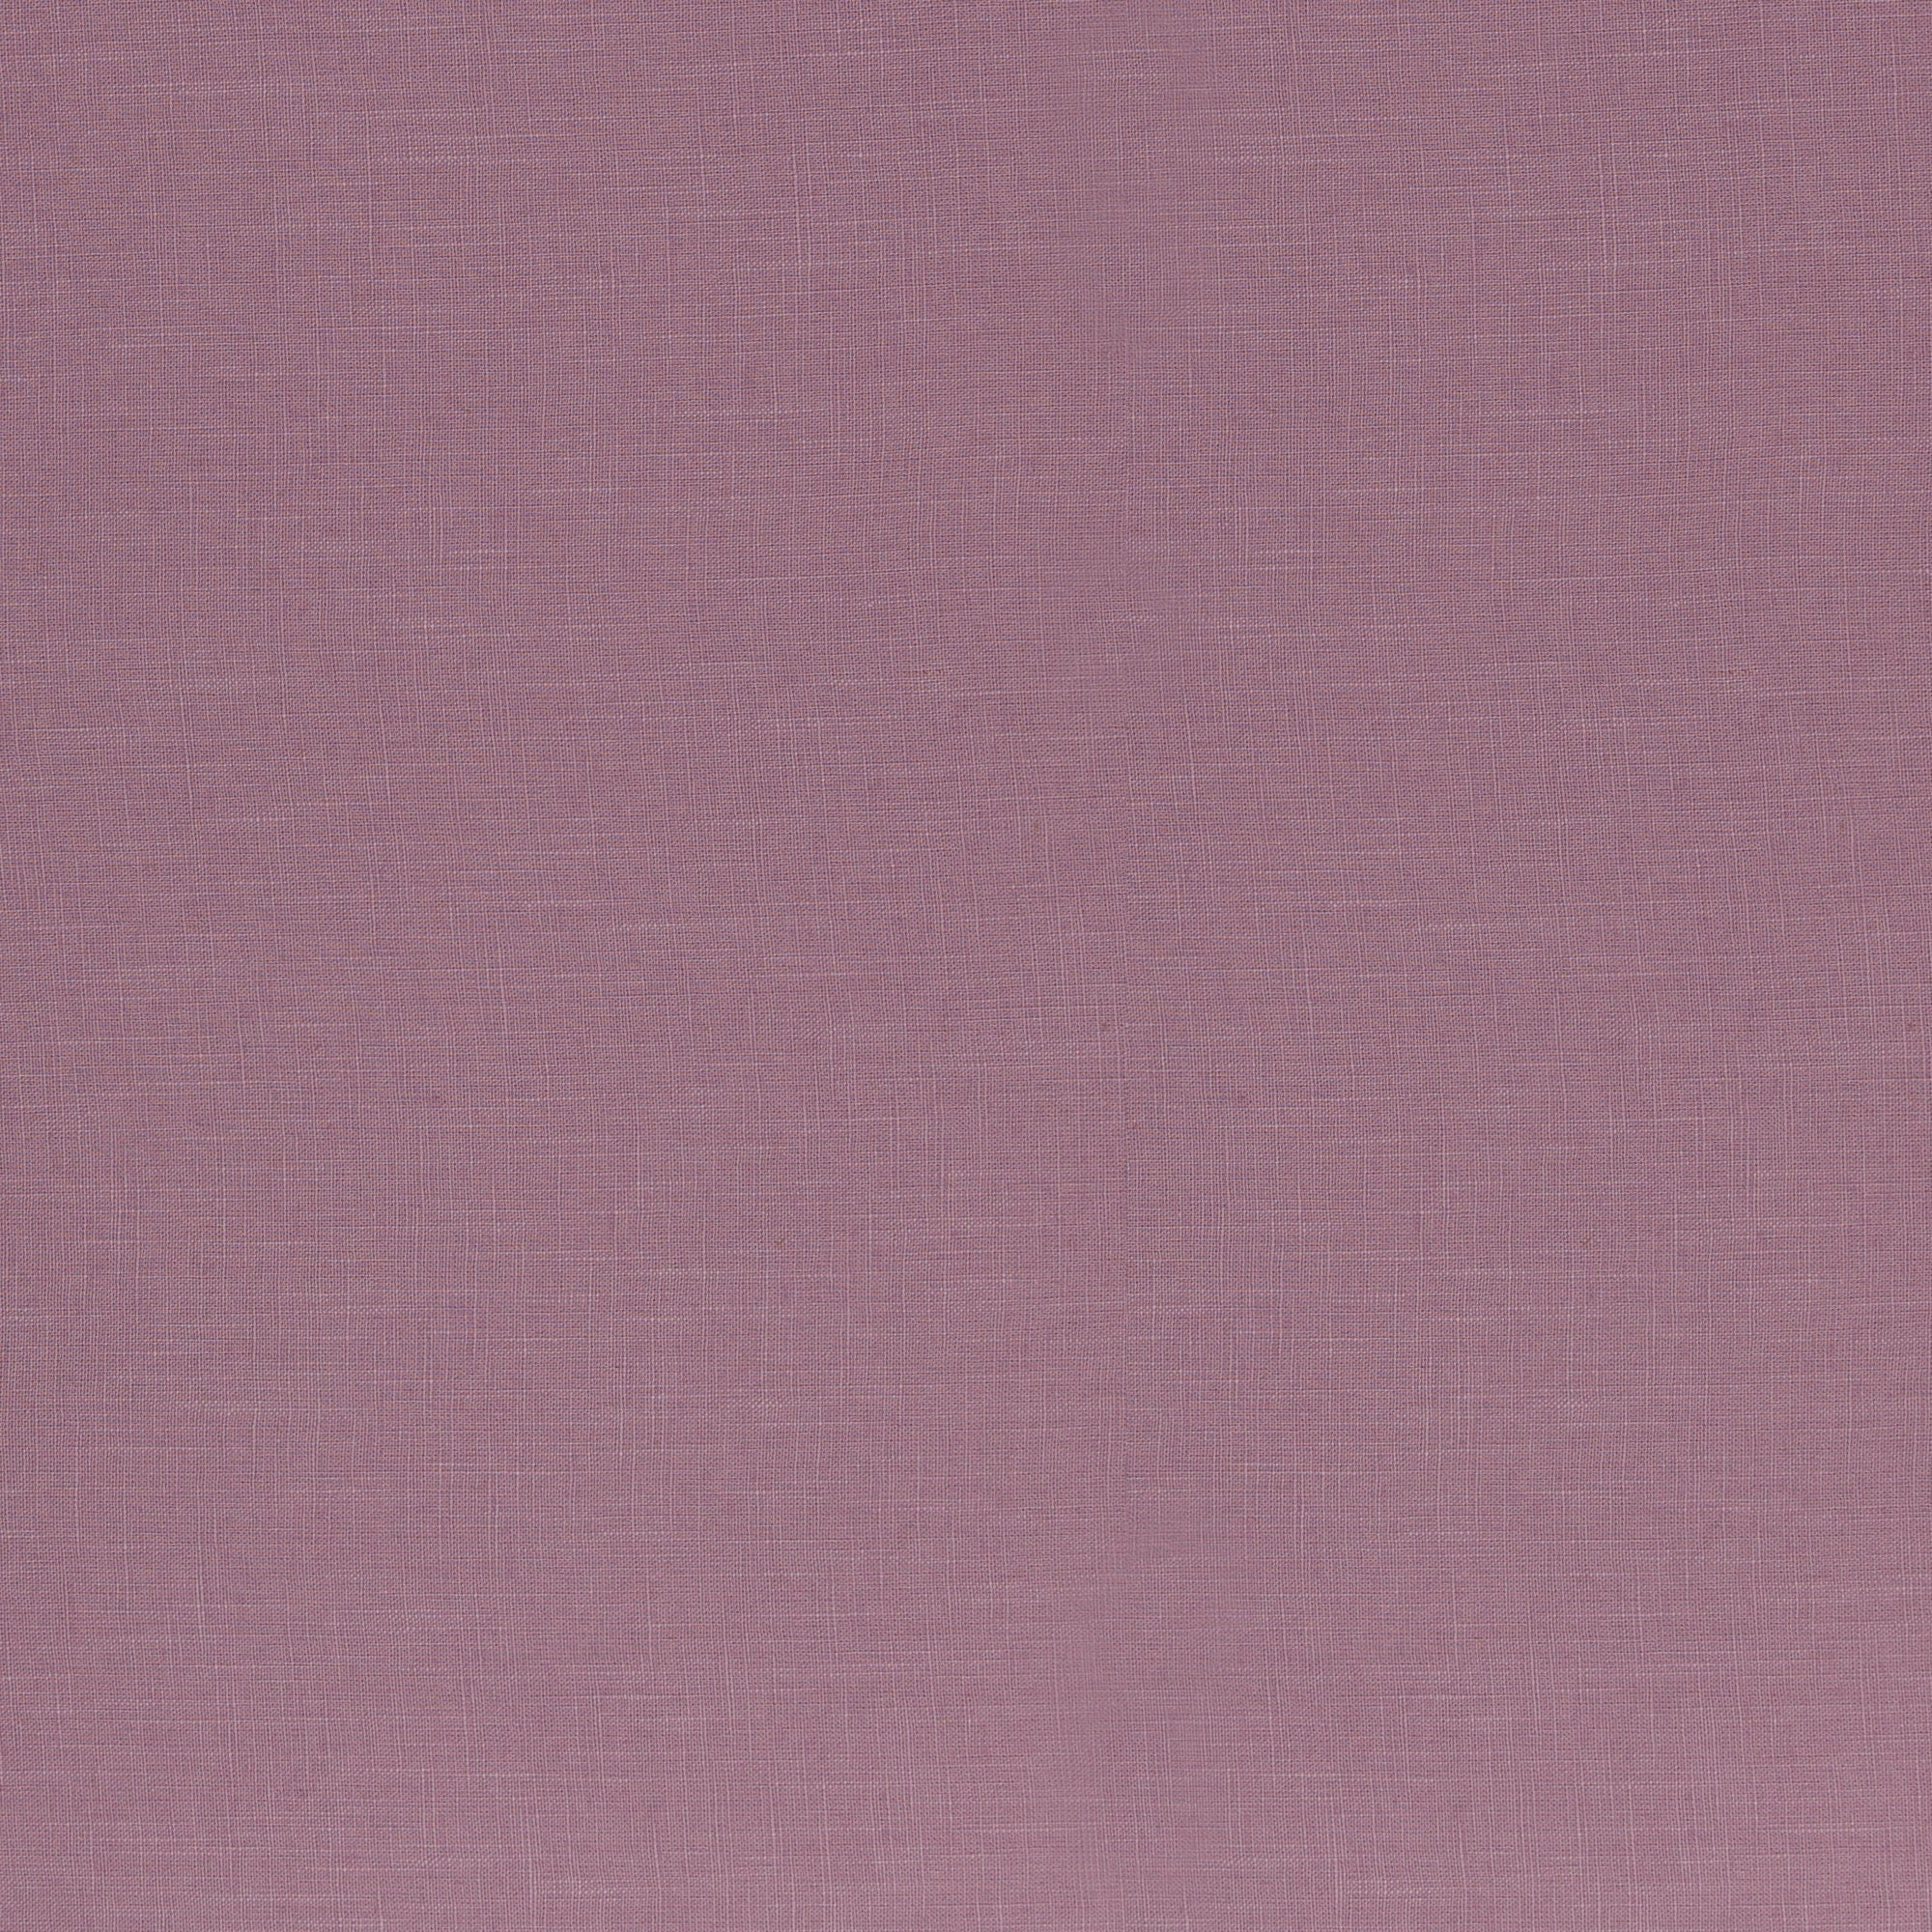 Heavyweight Linen- Old Rose - $32.00/metre